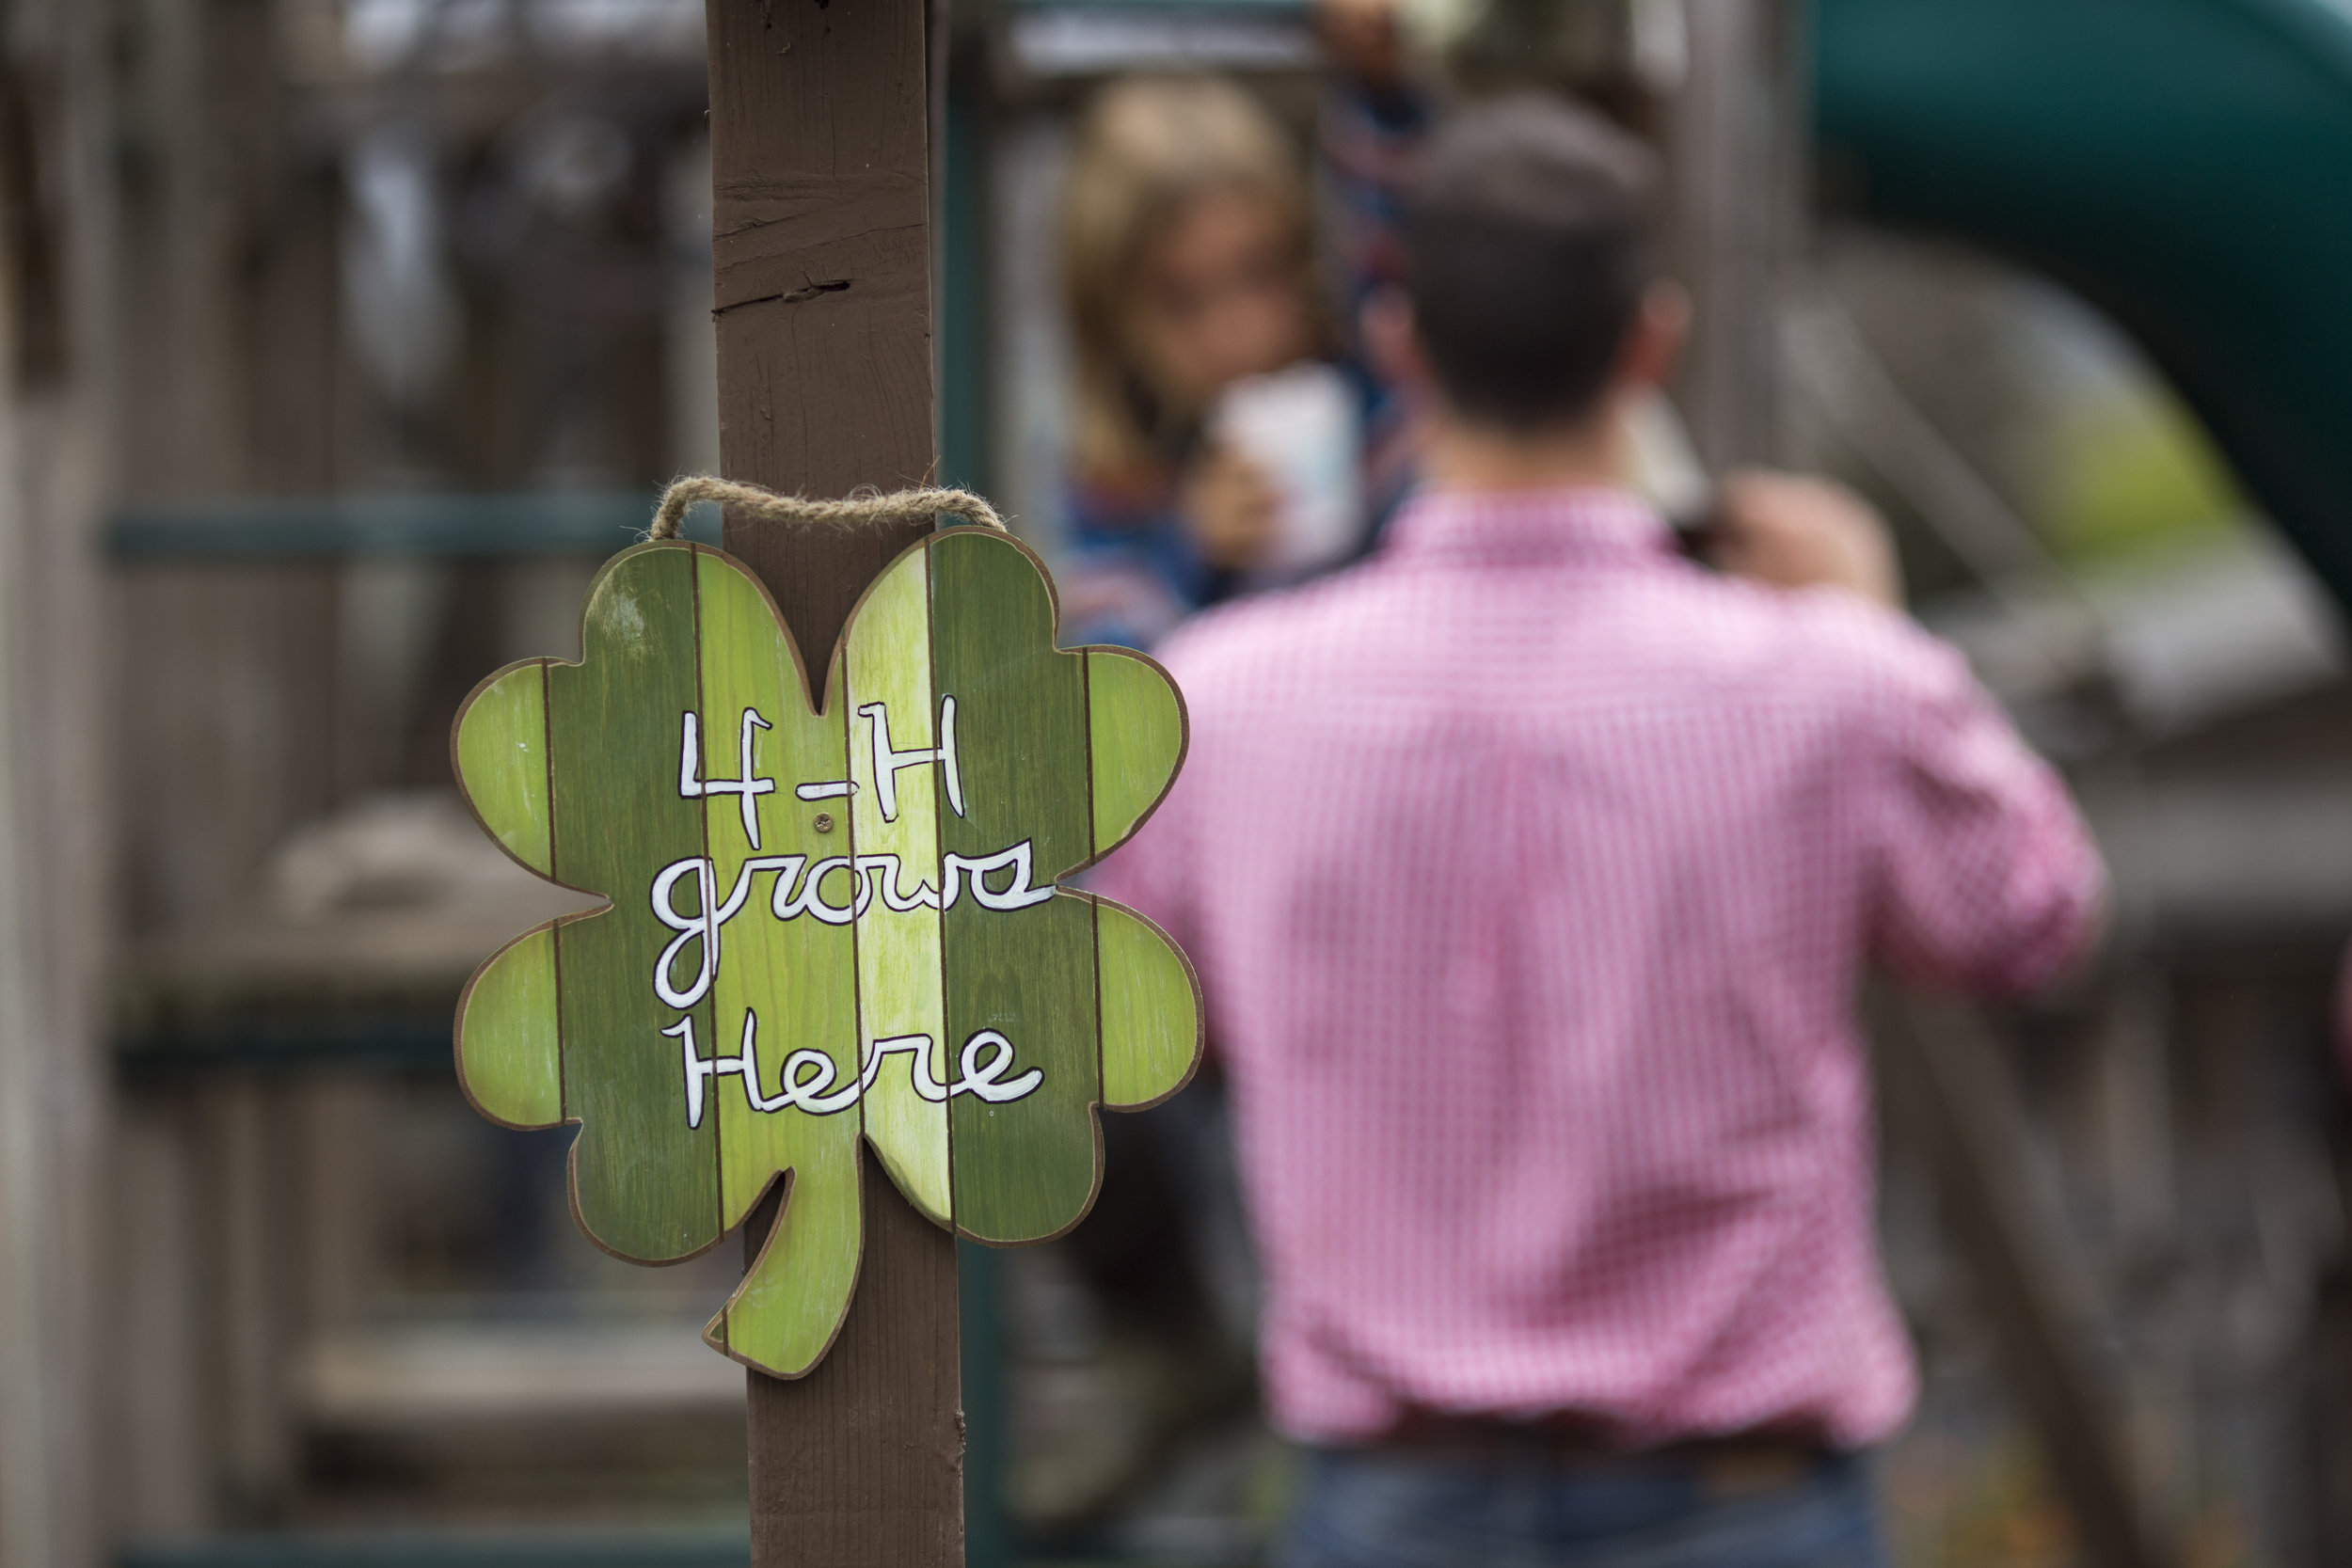 4-H Grows Here Wood Sign.jpg